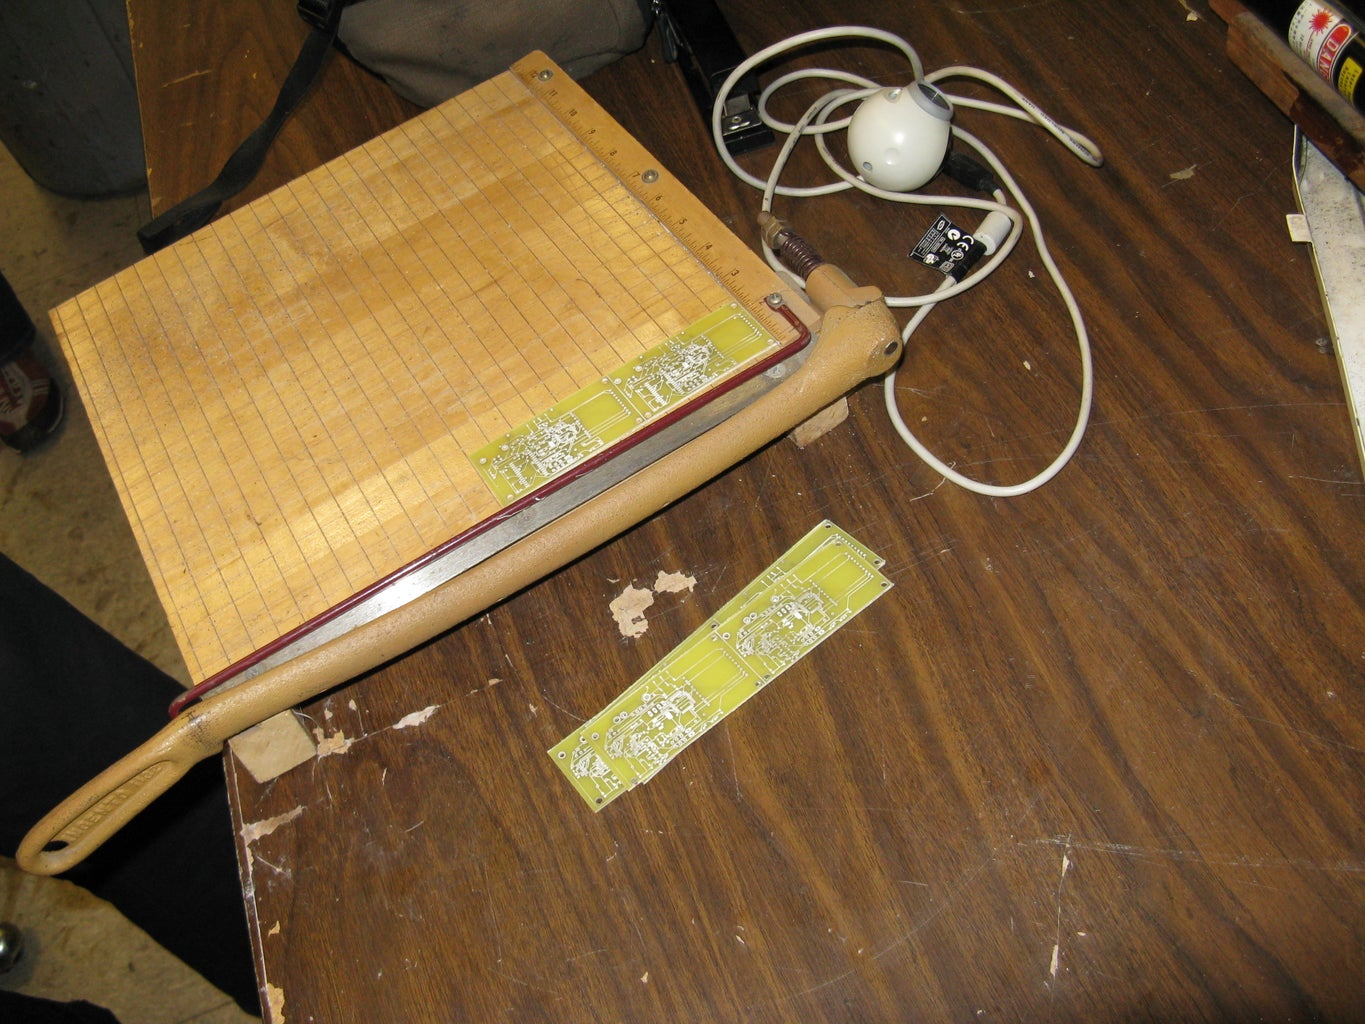 Cut Circuit Boards With a Paper Cutter